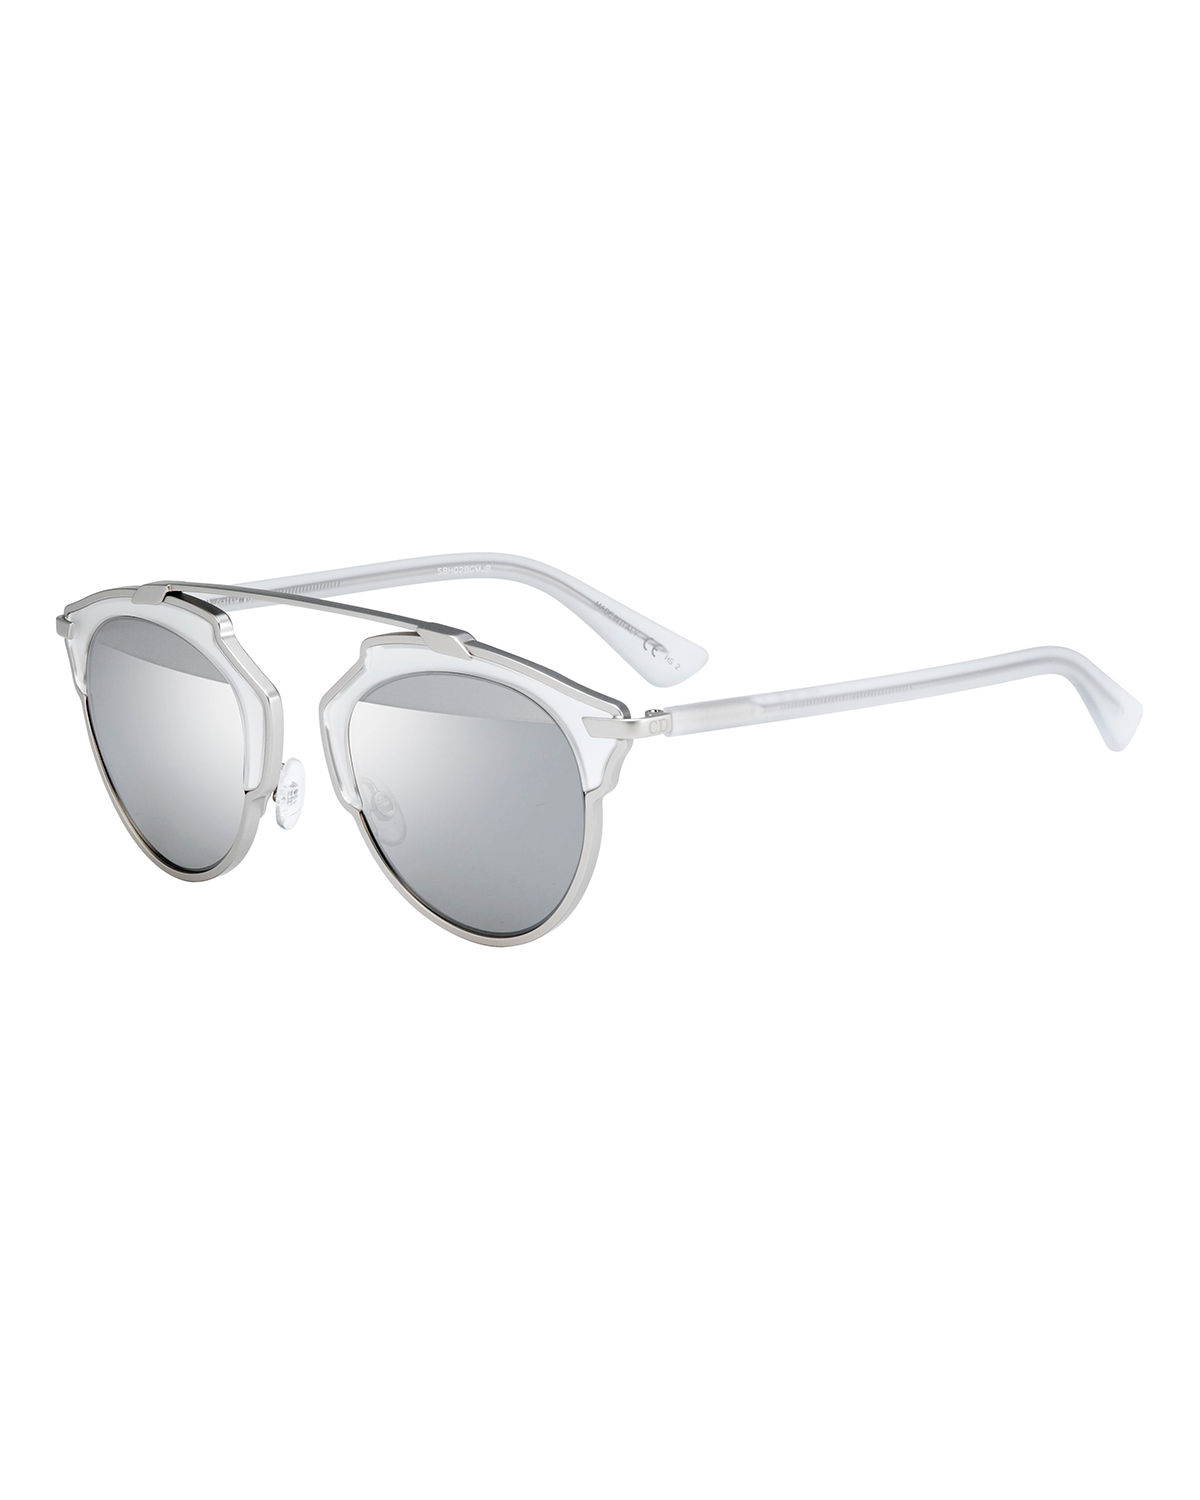 So Real Mirrored Iridescent Sunglasses